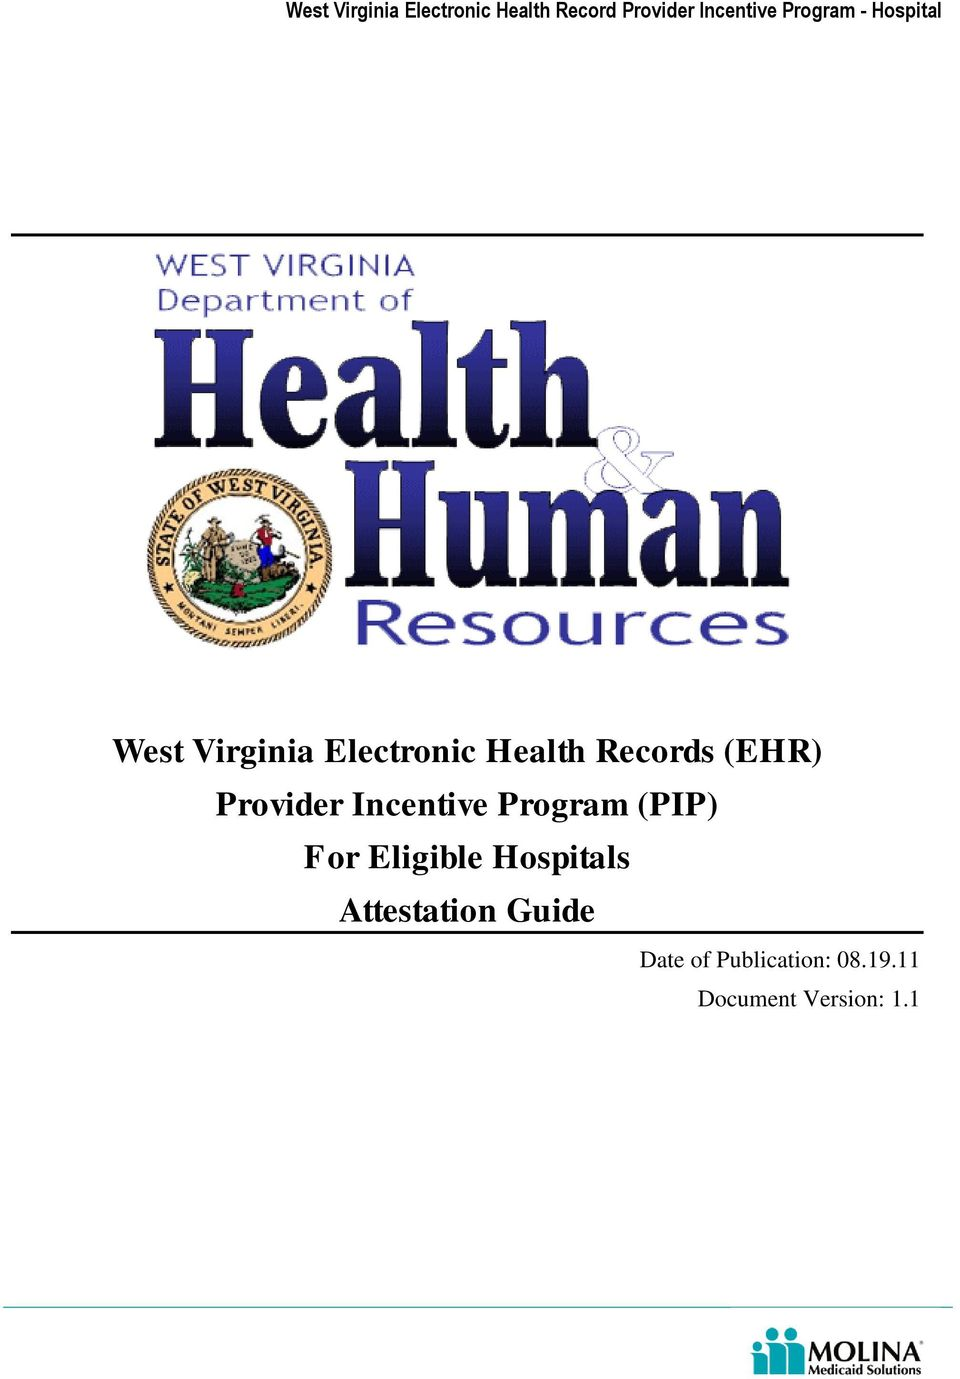 (EHR) Provider Incentive Program (PIP) For Eligible Hospitals